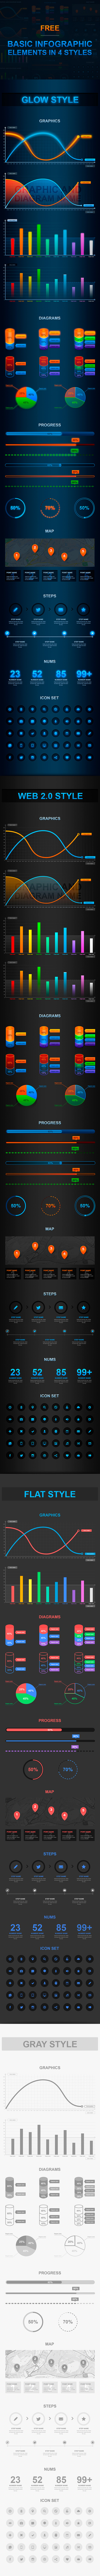 Free Infographic Elements PSD